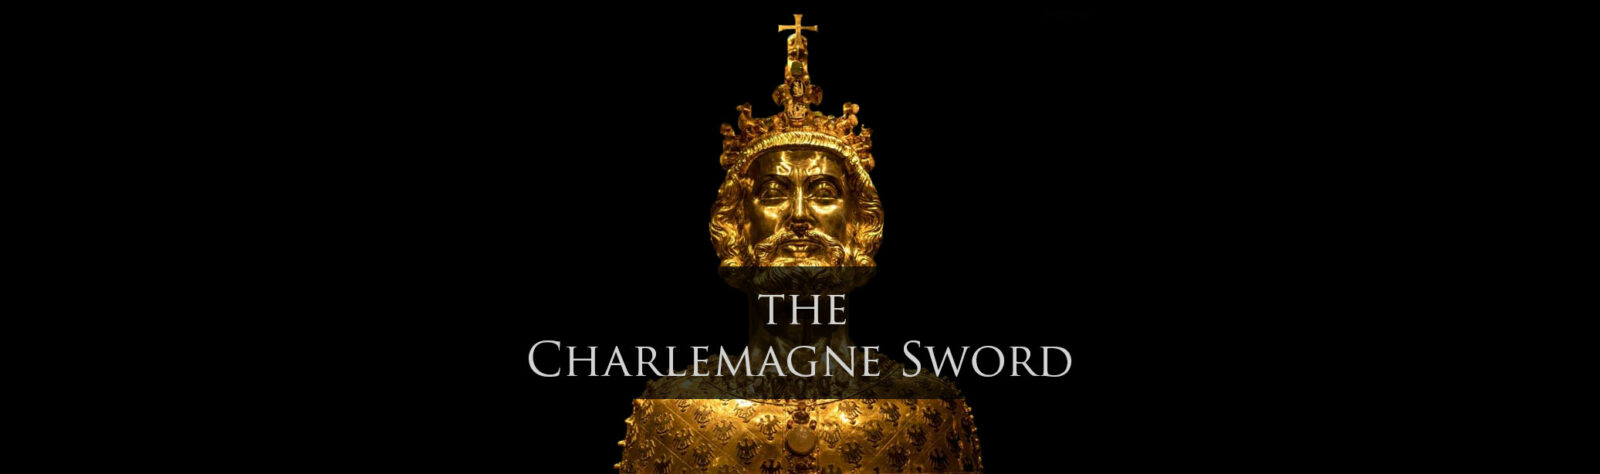 the-charlemagne-sword-banner-3